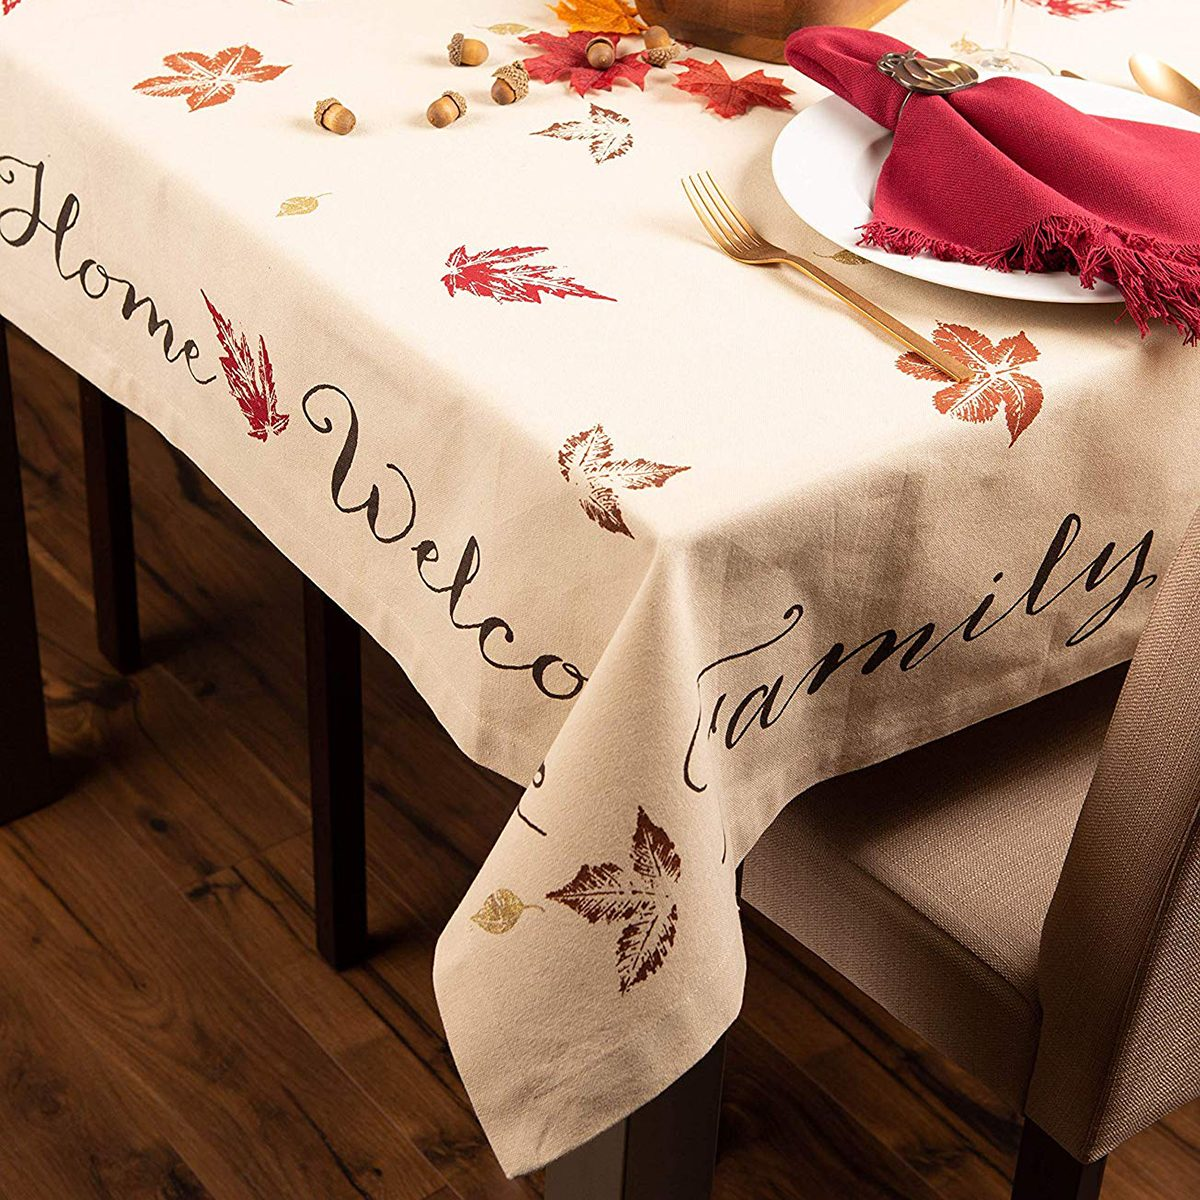 """DII 100% Cotton, Machine Washable, Printed Kitchen Tablecloth For Dinner Parties, Fall, Holidays & Thanksgiving - 60x84"""" Seats 6 to 8 People, Rustic Leaves"""